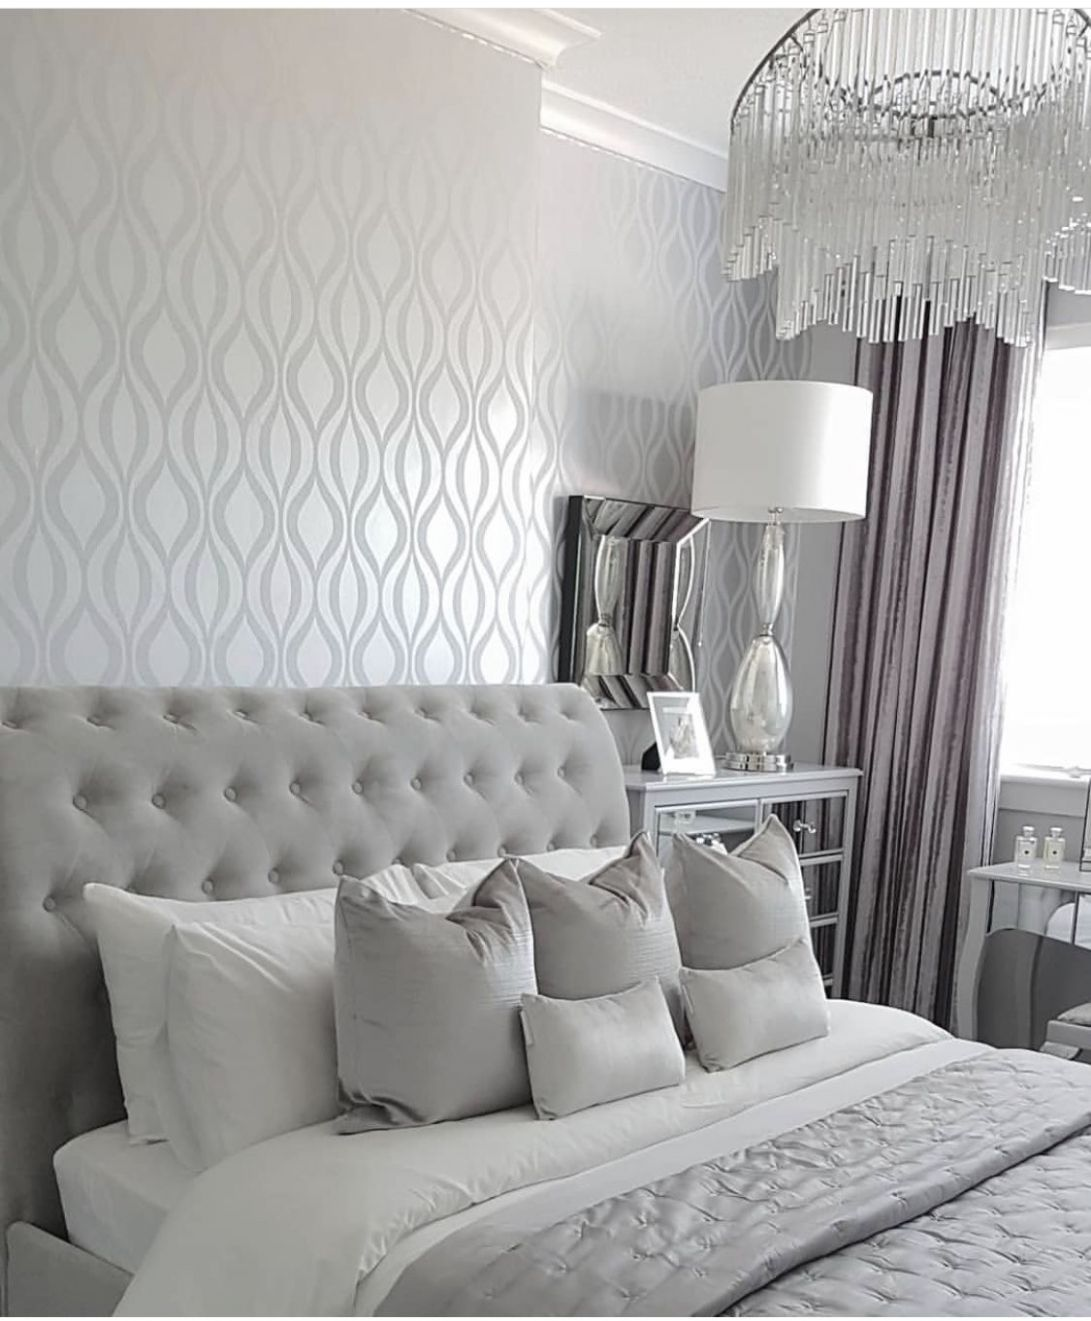 Pin by Elly on Home improvement | Silver bedroom, Silver bedroom ..